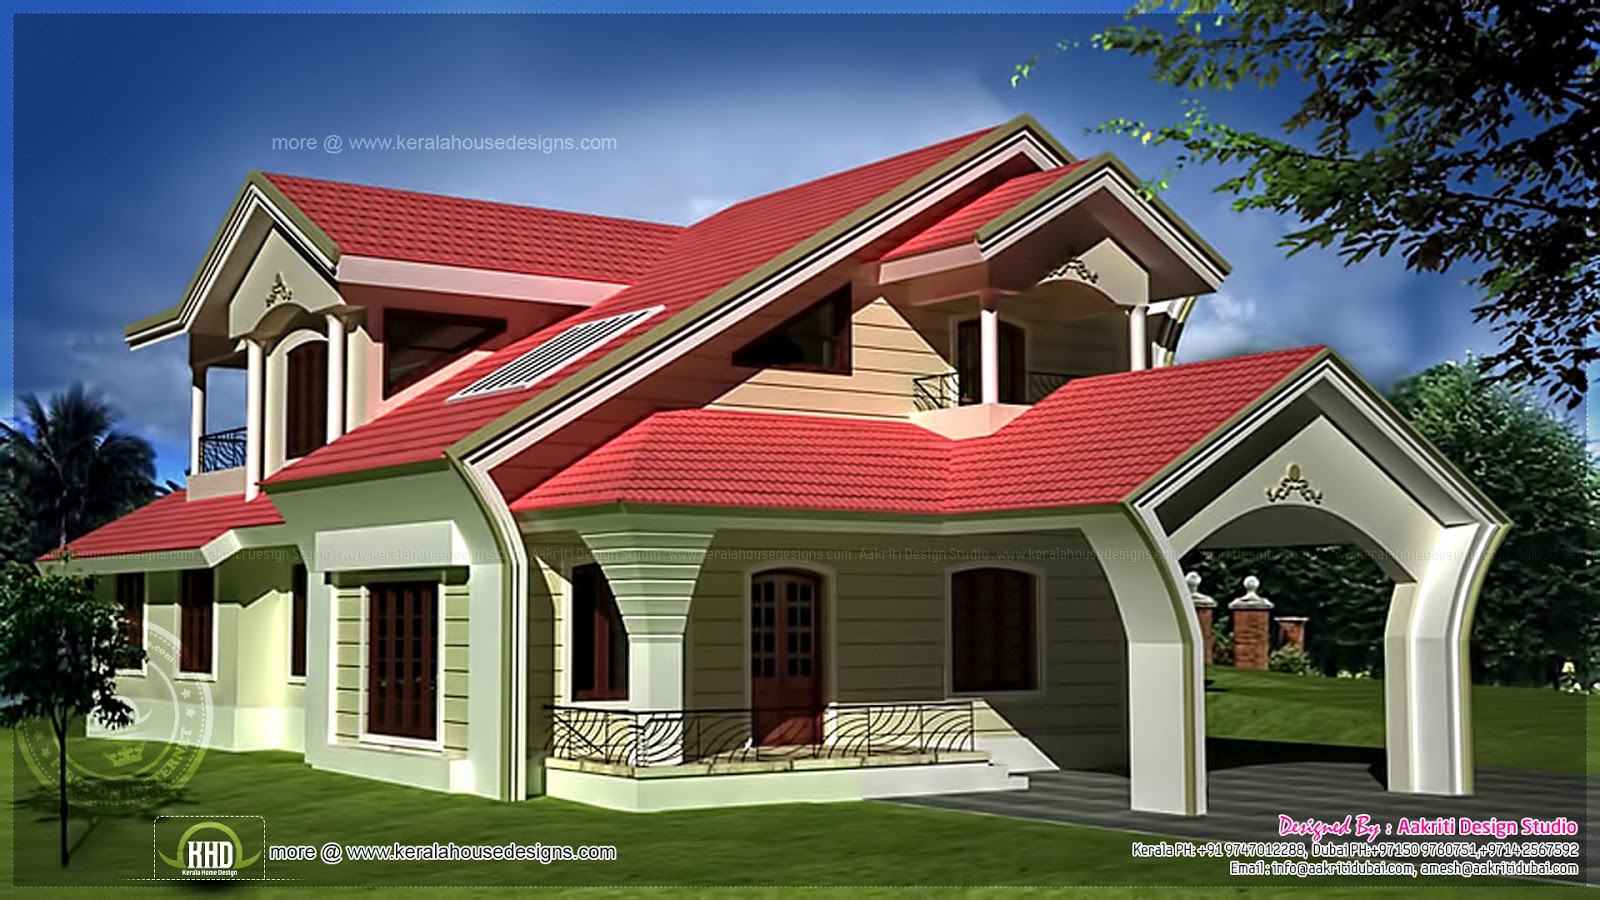 September 2013 kerala home design and floor plans for Creative house designs